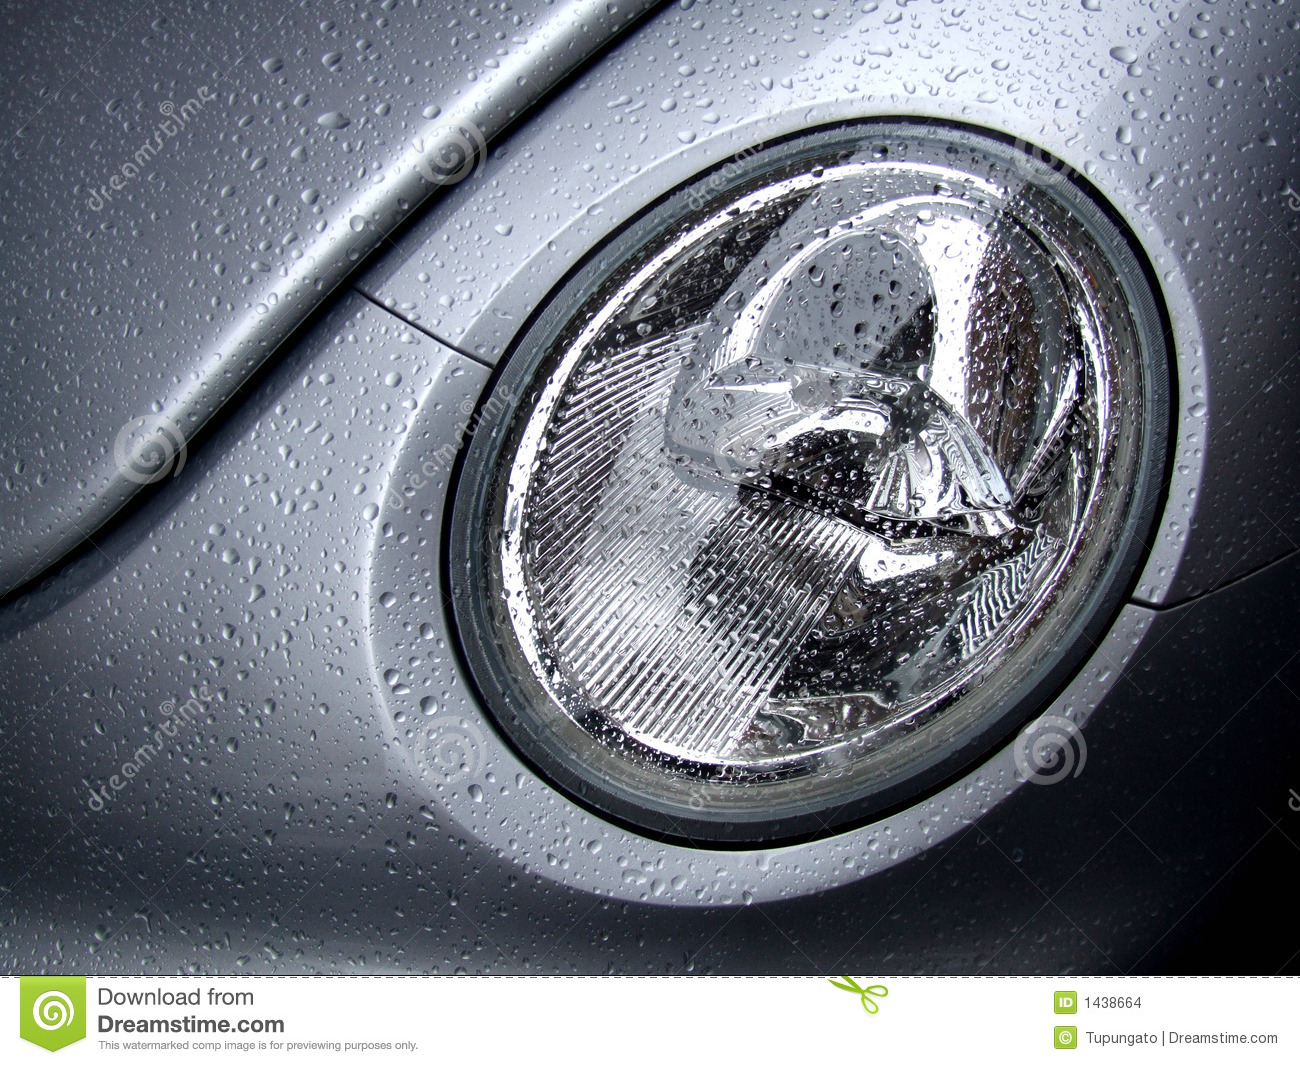 New Silver Car Lamp With Water Drops Stock Images - Image: 1438664